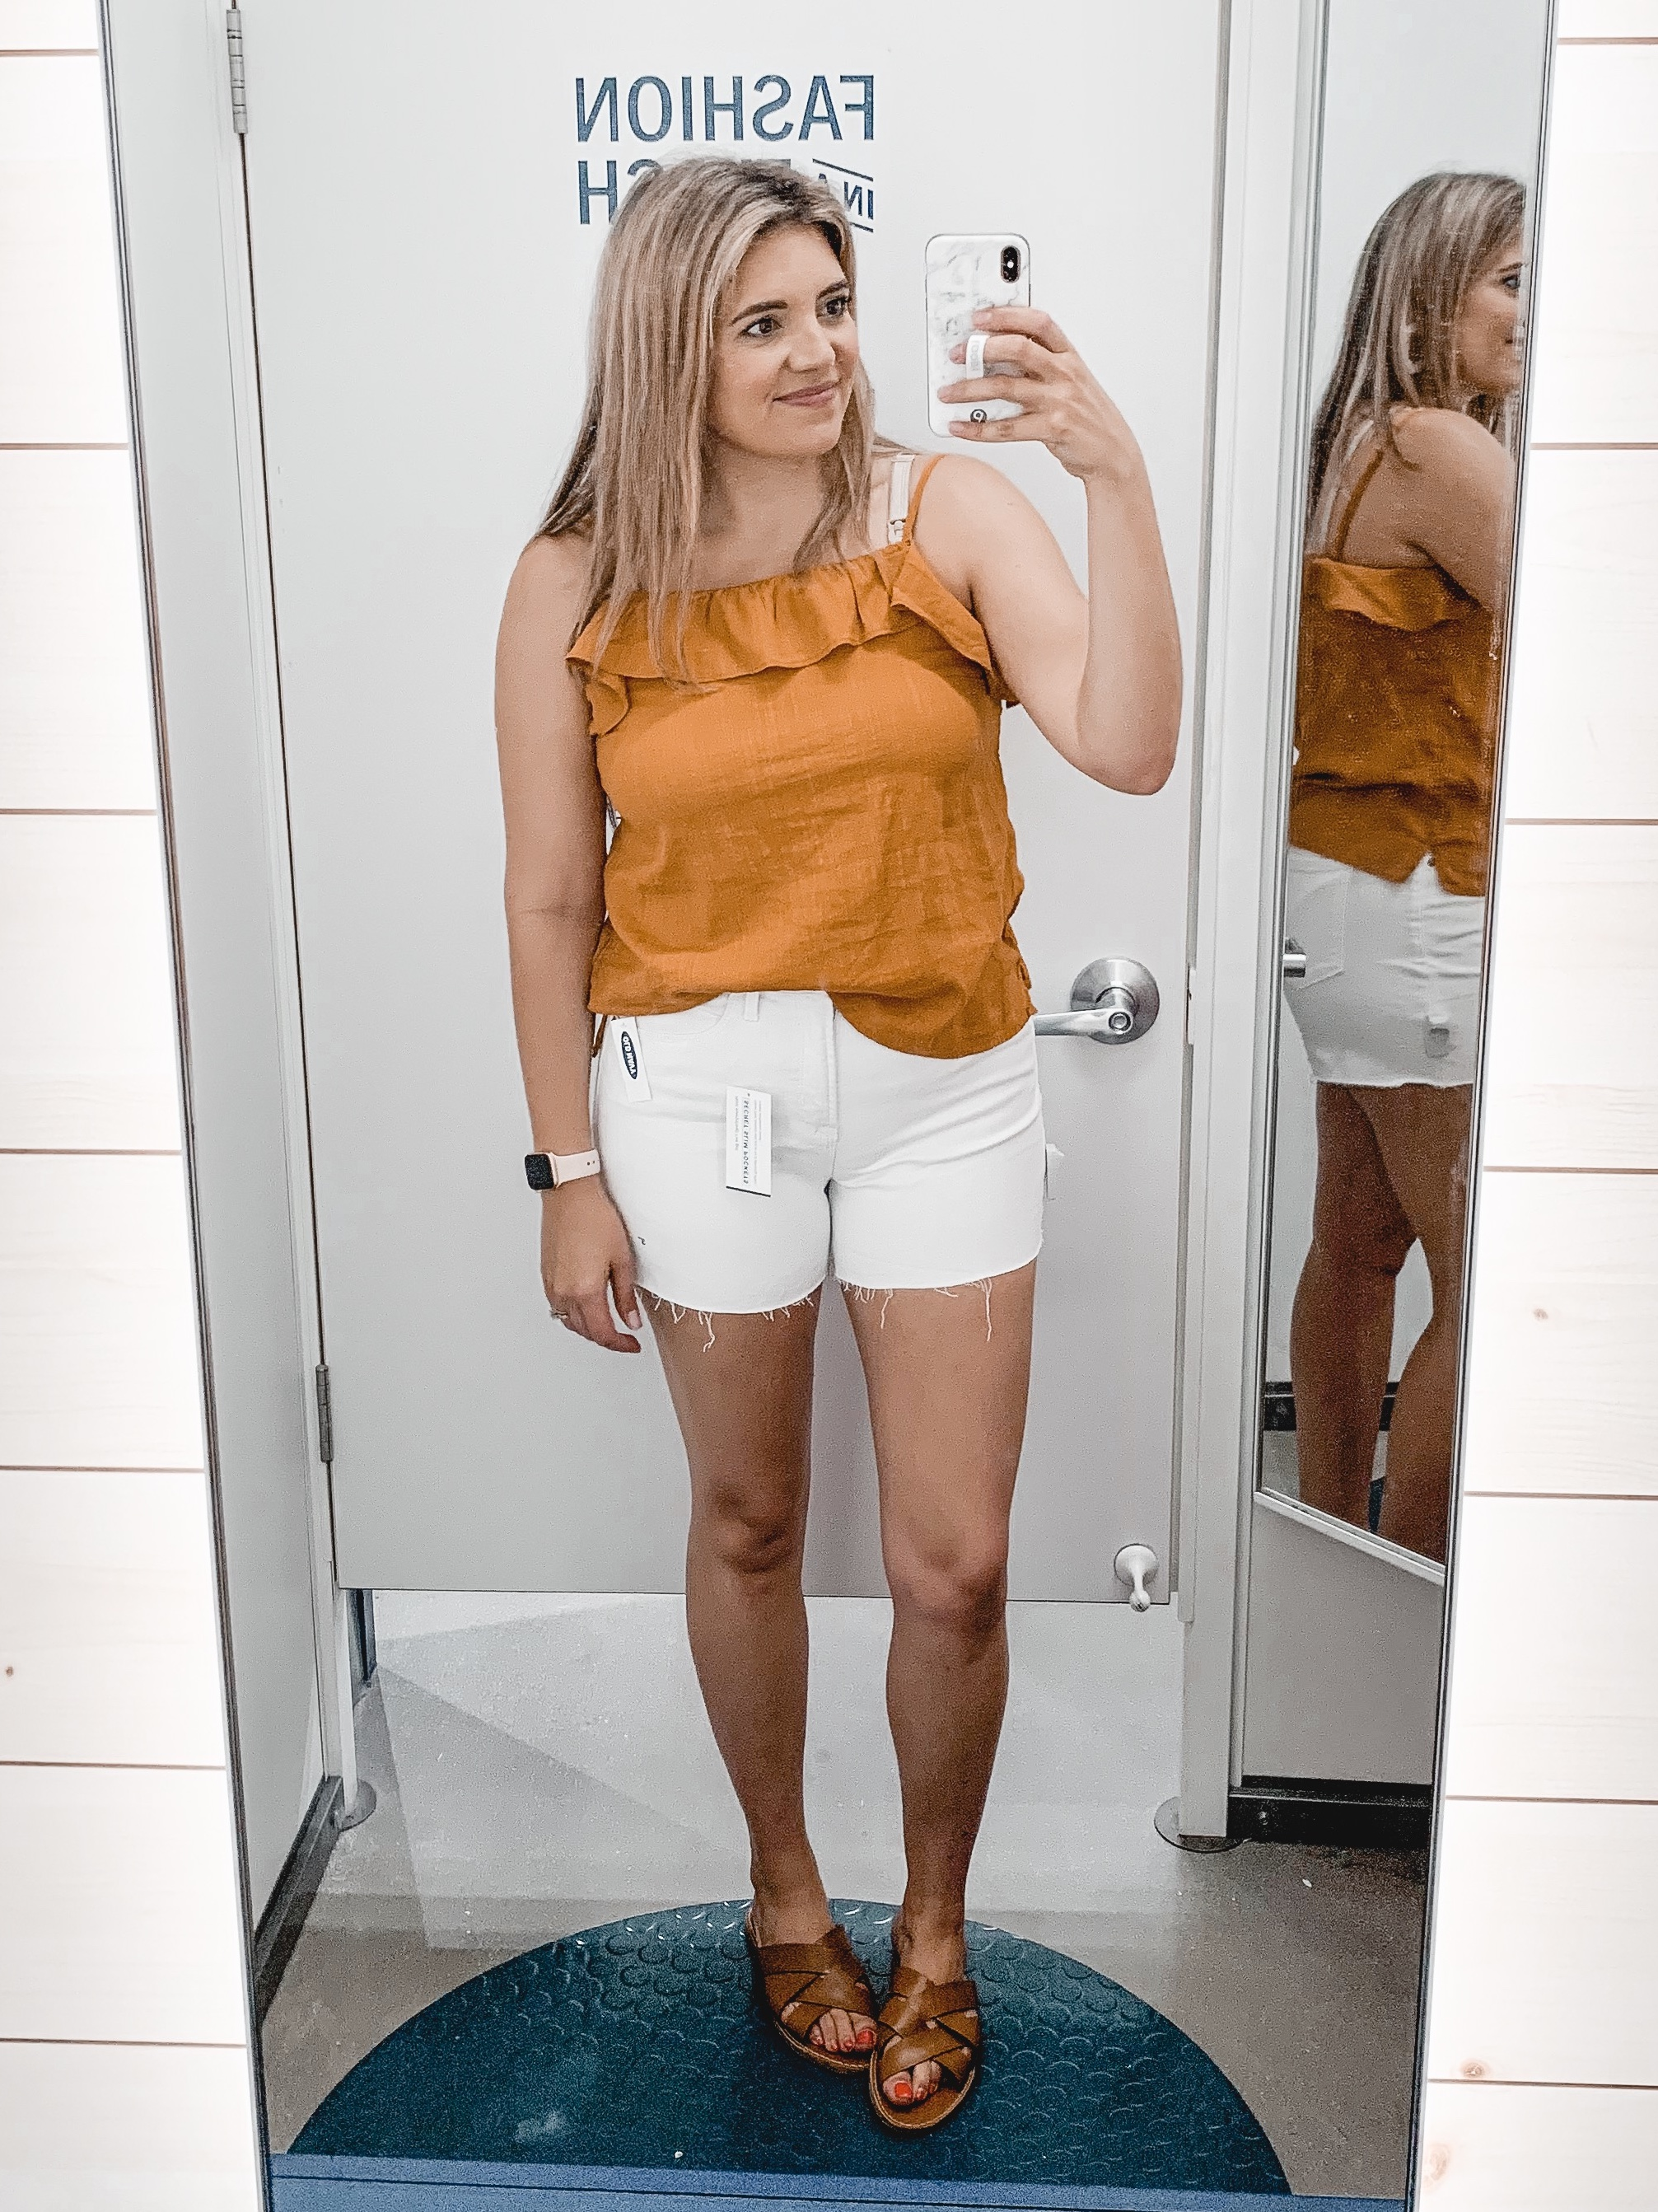 Virginia blogger Lauren Dix shares Old Navy outfits for summer in her Old Navy try on!